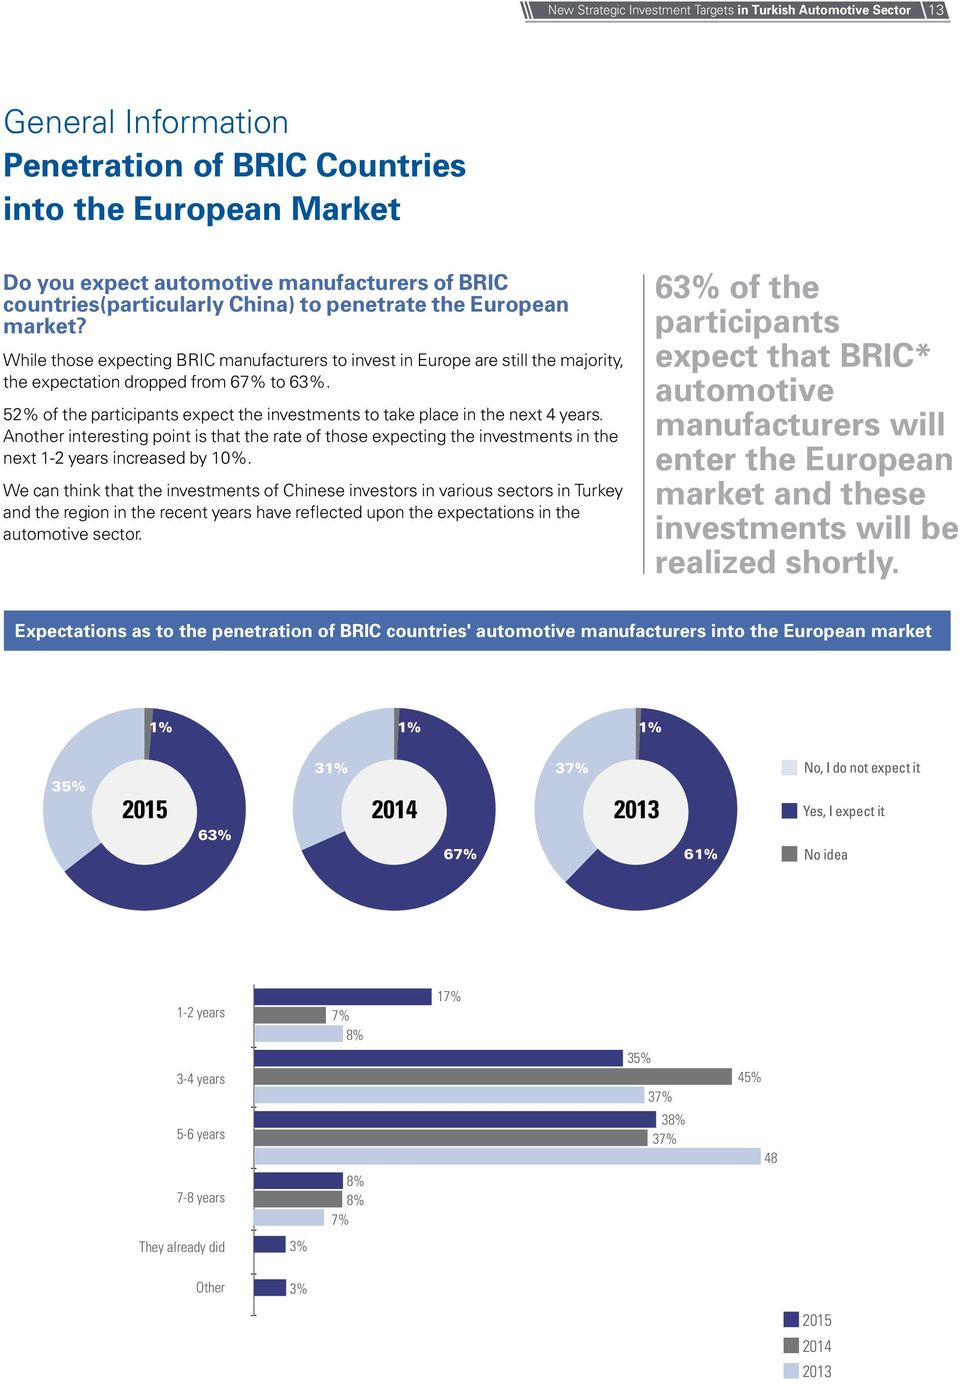 52% of the participants expect the investments to take place in the next 4 years. Another interesting point is that the rate of those expecting the investments in the next 1-2 years increased by 10%.